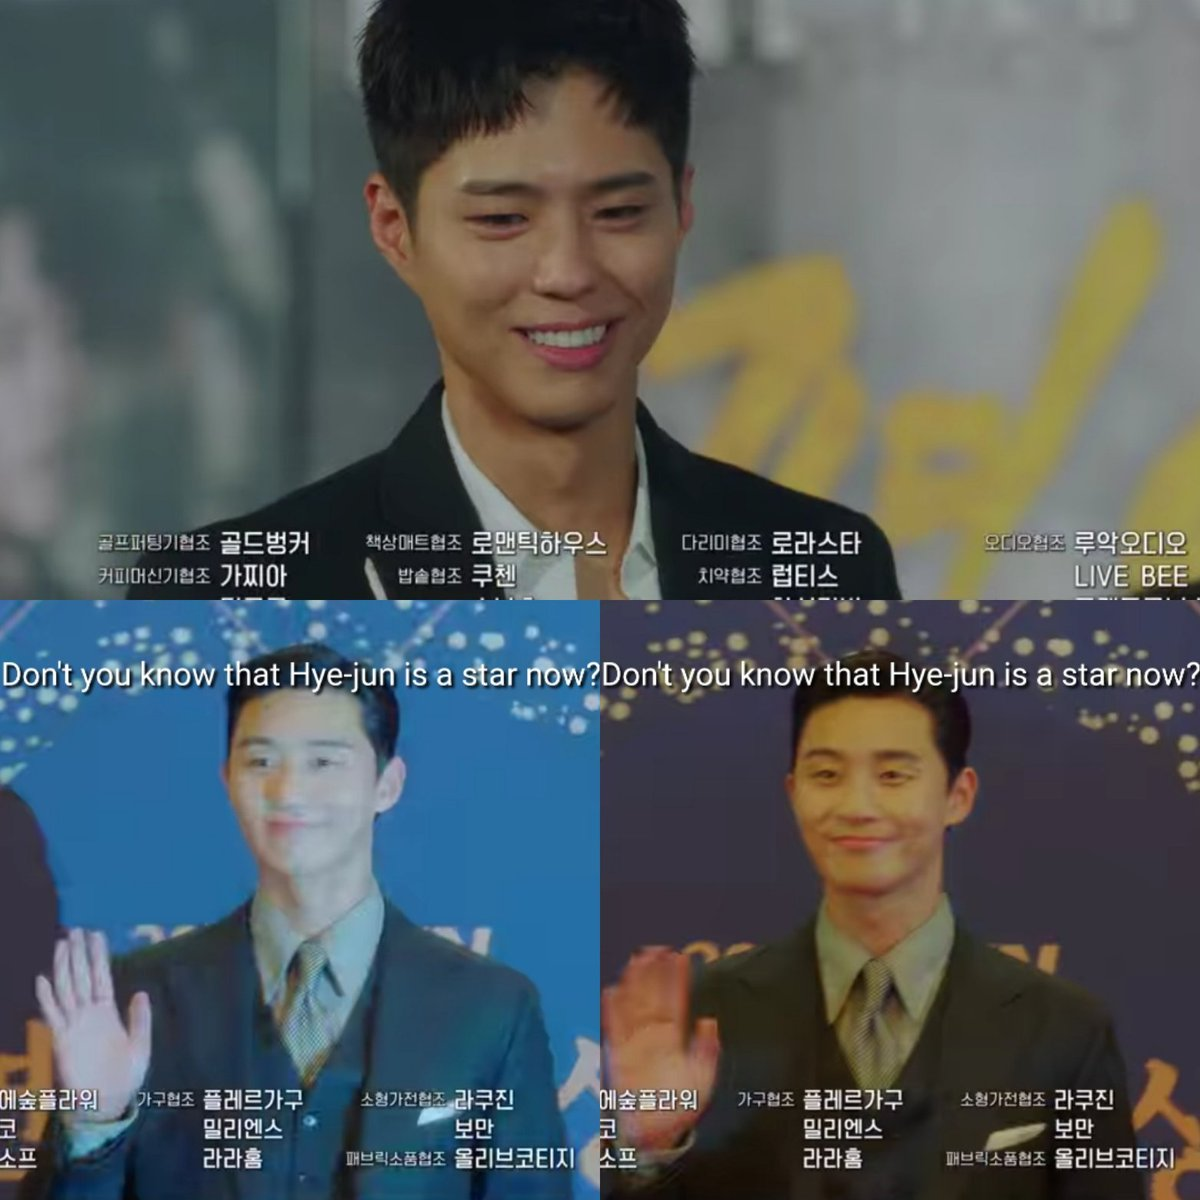 """Park Seo Joon's at the preview for episode 9 of """"Record Of Youth,"""" he will be having a cameo appearance next week.   #RecordOfYouth  #RecordOfYouthEp8 #RecordOfYouthEp9 https://t.co/AxH2D0icGh"""